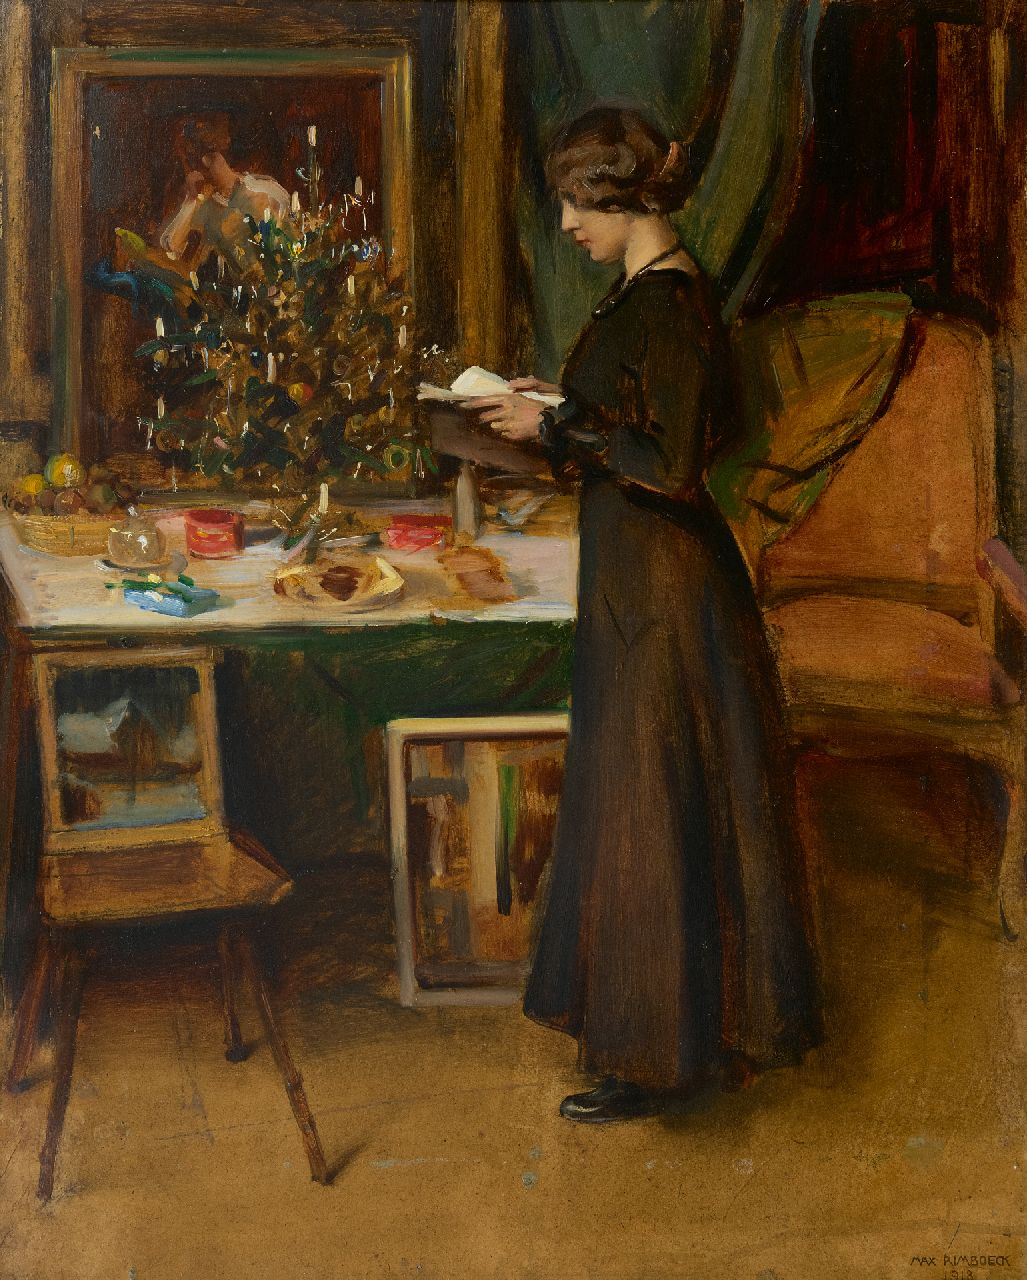 Rimböck M.  | Max Rimböck | Paintings offered for sale | Young woman by a Christmas tree, oil on painter's board 63.2 x 51.1 cm, signed l.r. and dated 1918